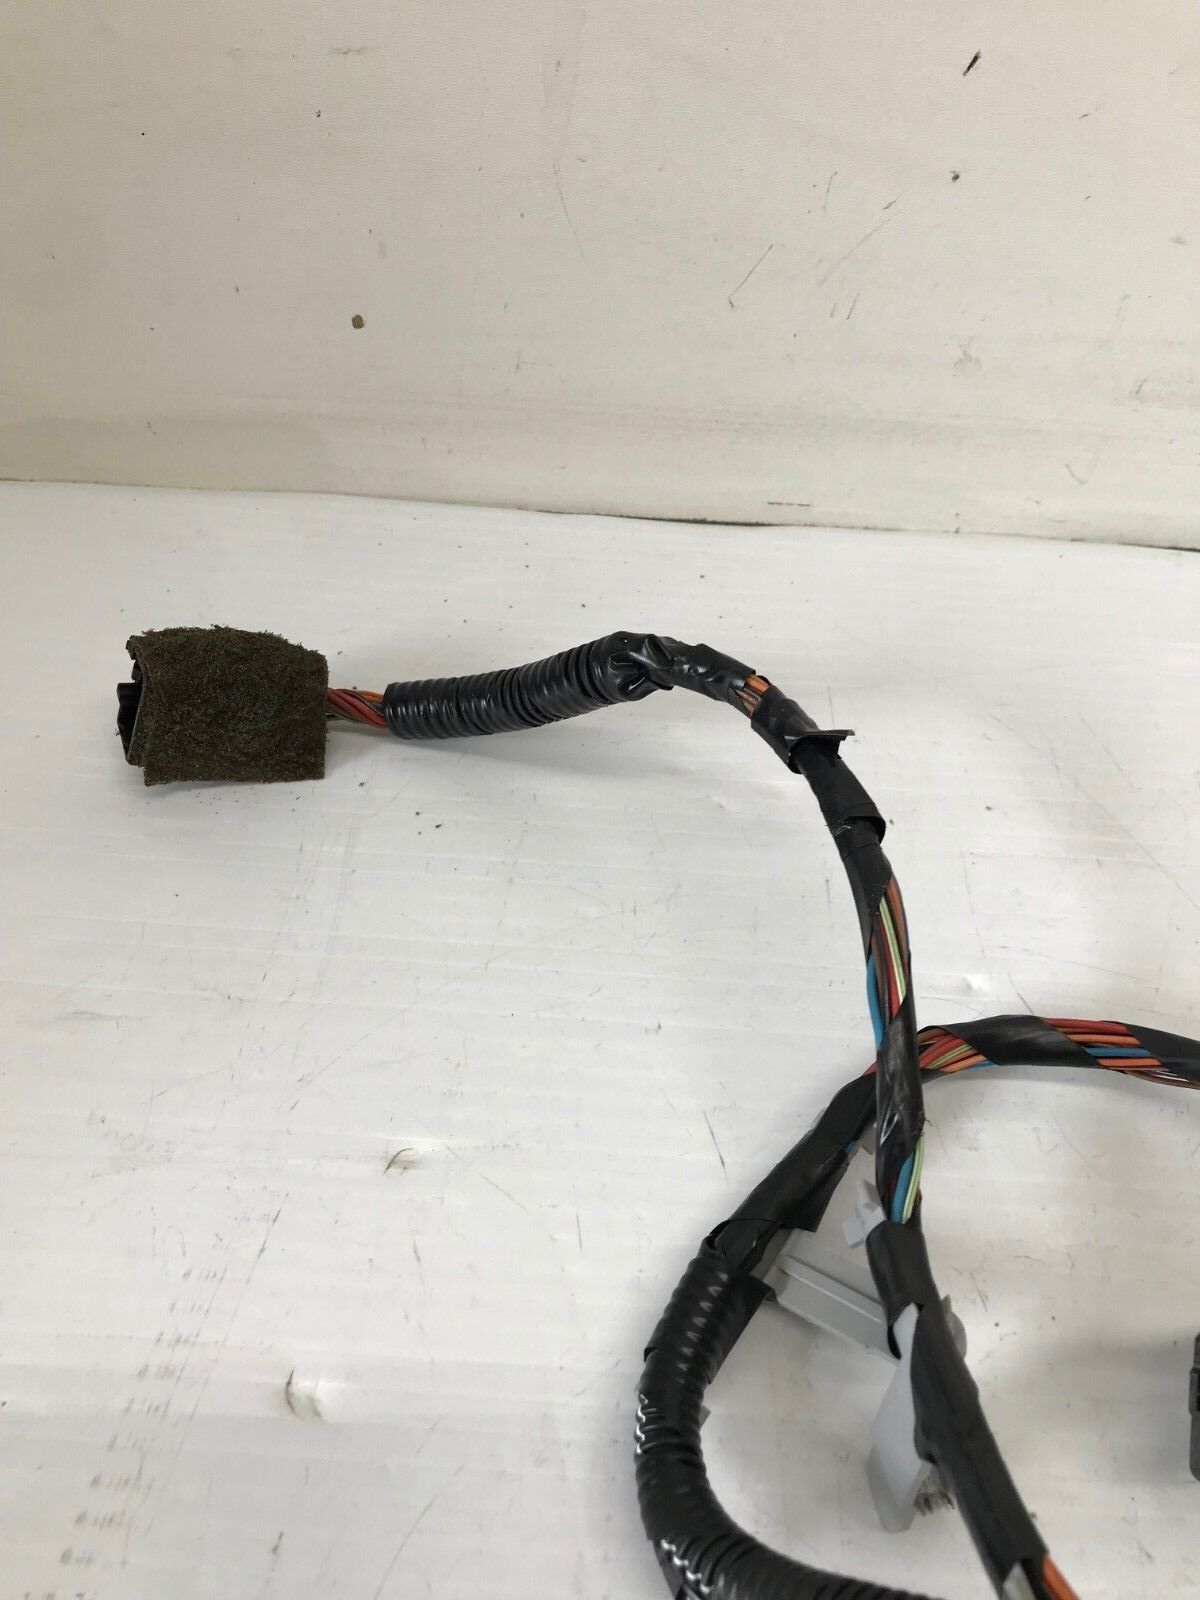 Used Jaguar Switches And Controls For Sale Page 55 1992 Xj6 Wiring Harness 2004 2007 Xj8 Xj8l Oem Trunk Lid 5w1993 1994 2013 2014a227